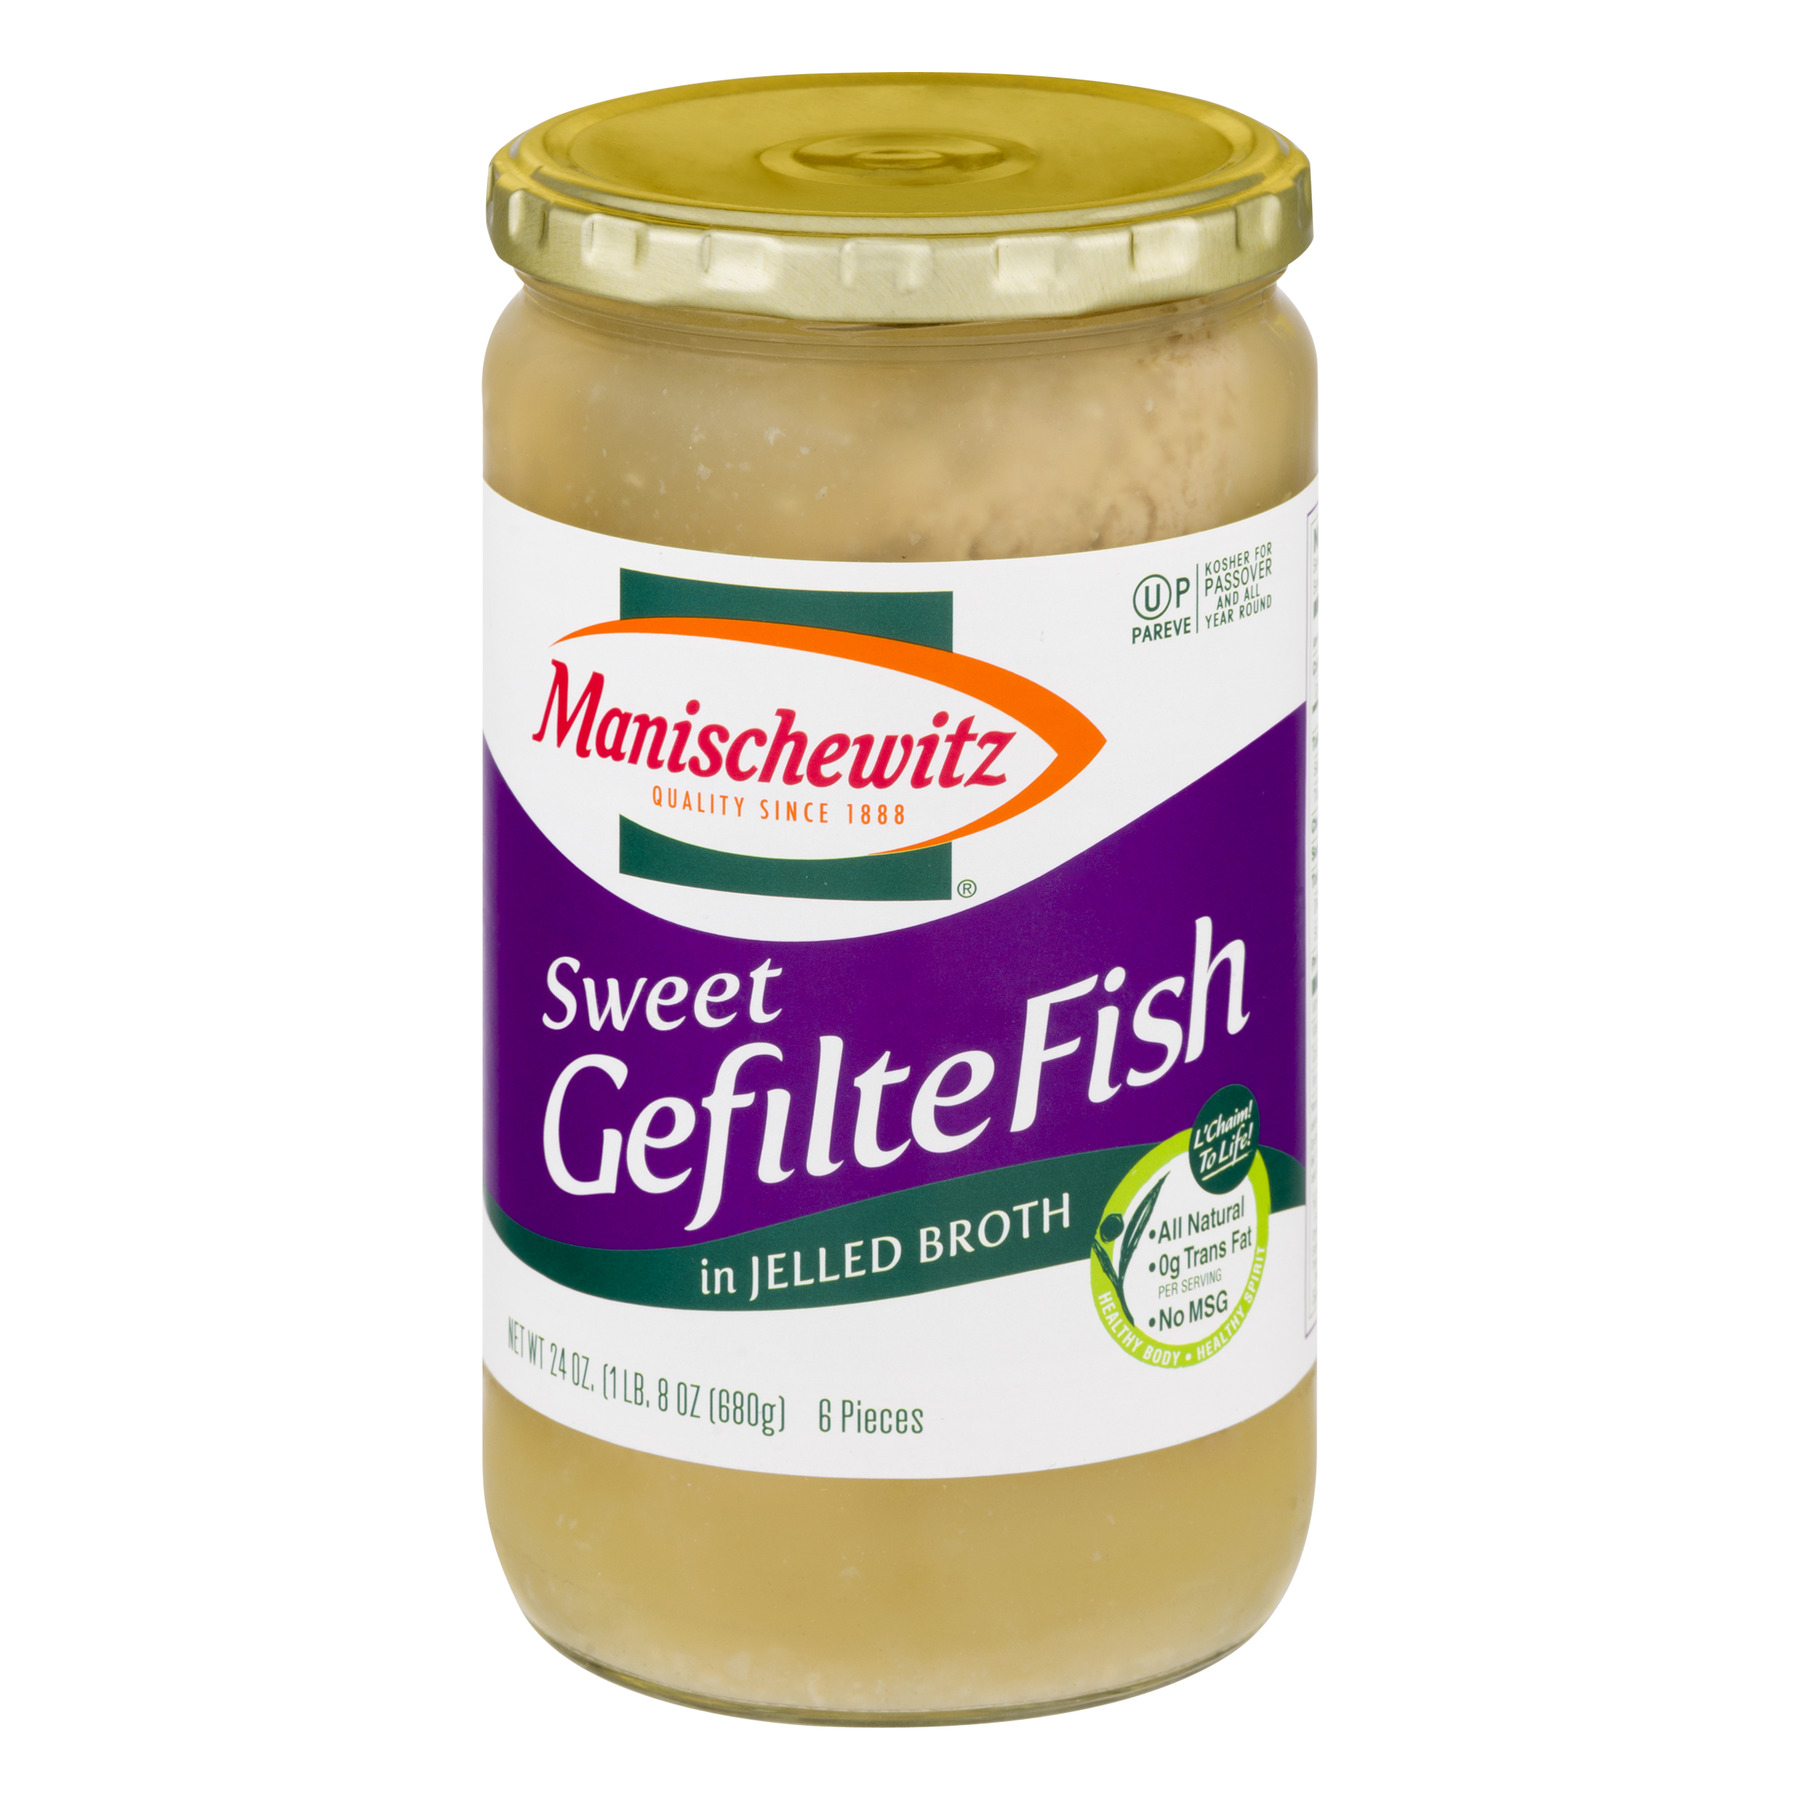 Manischewitz Sweet Gefilte Fish in Jelled Broth, 24.0 OZ